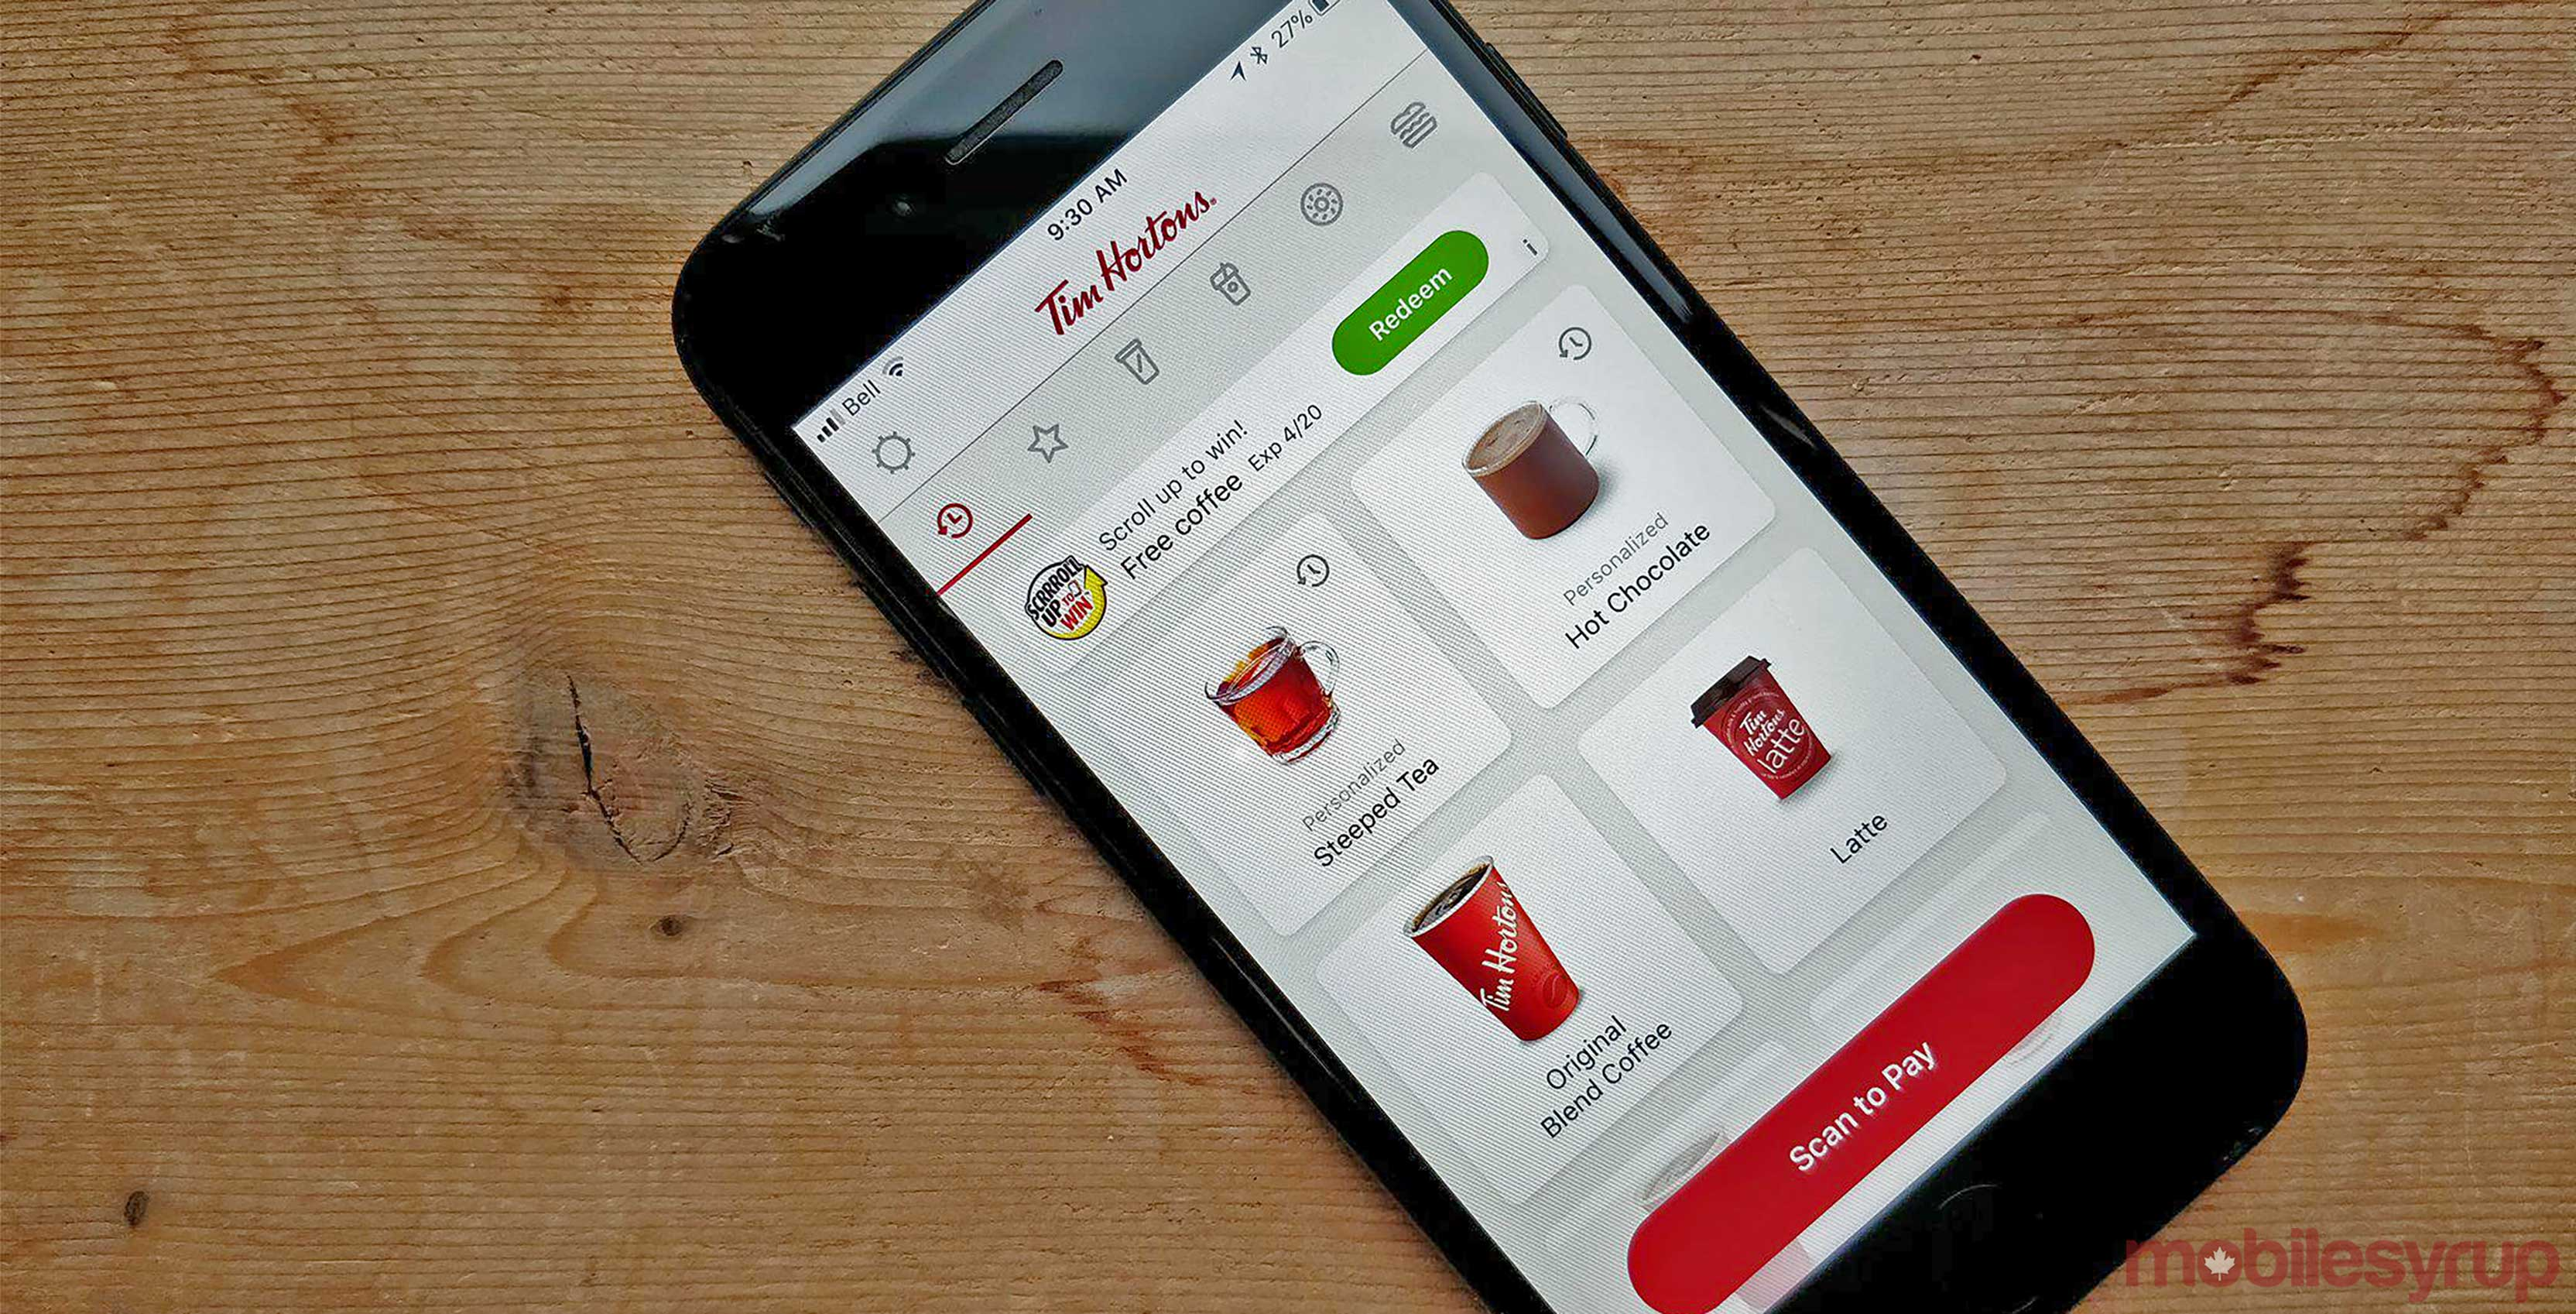 Tim Hortons scroll up to win feature